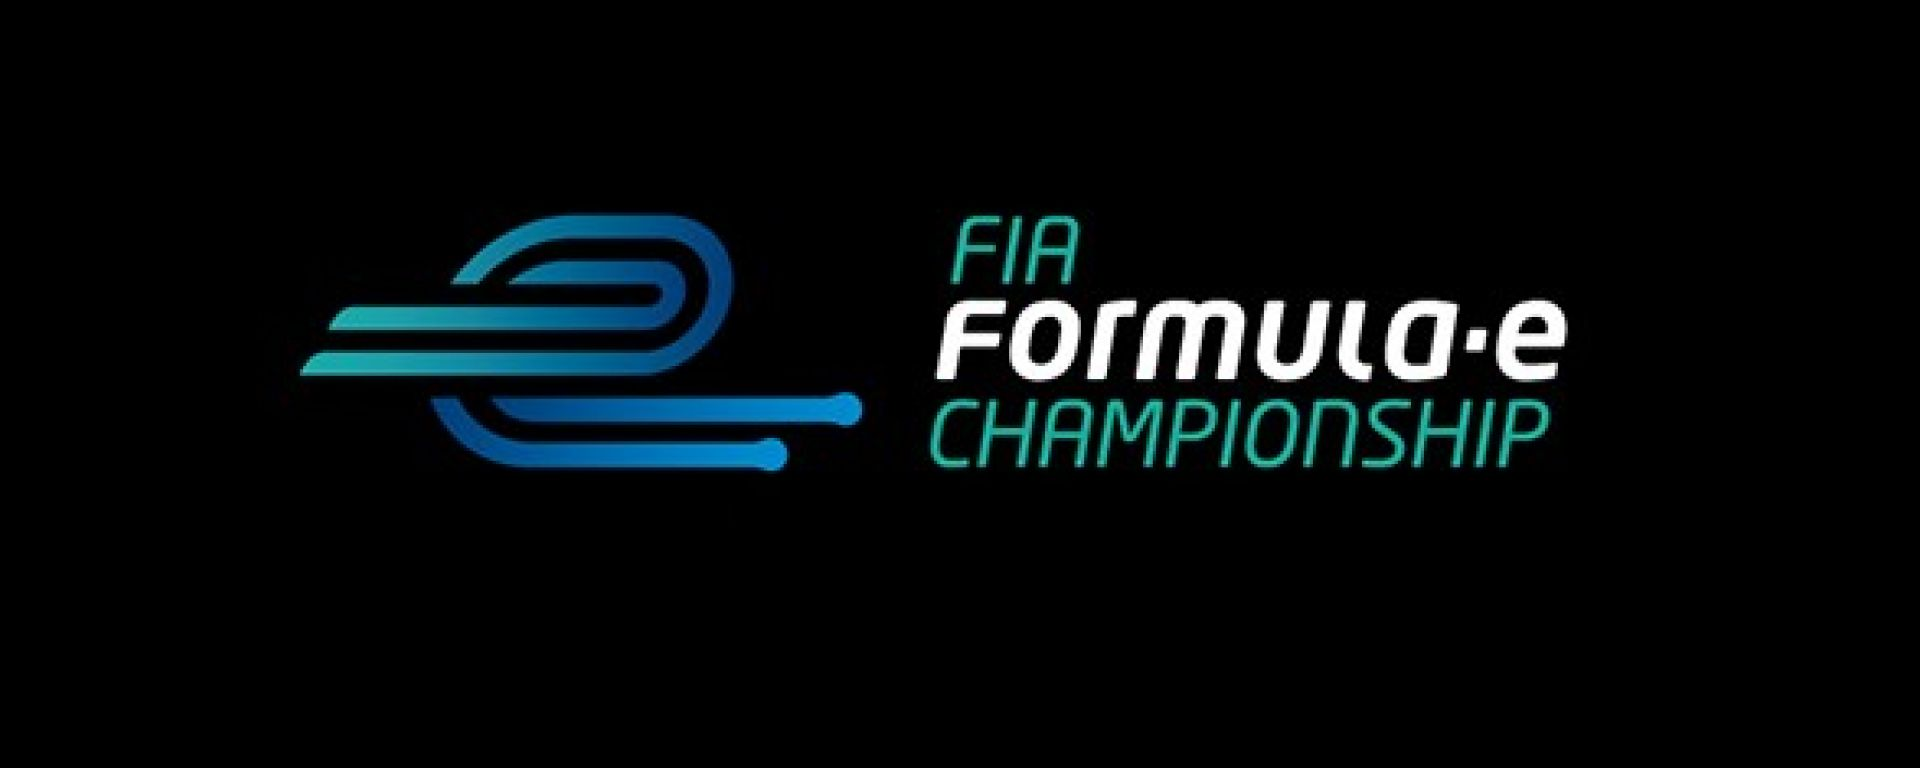 Classifiche FIA Formula E 2017/2018